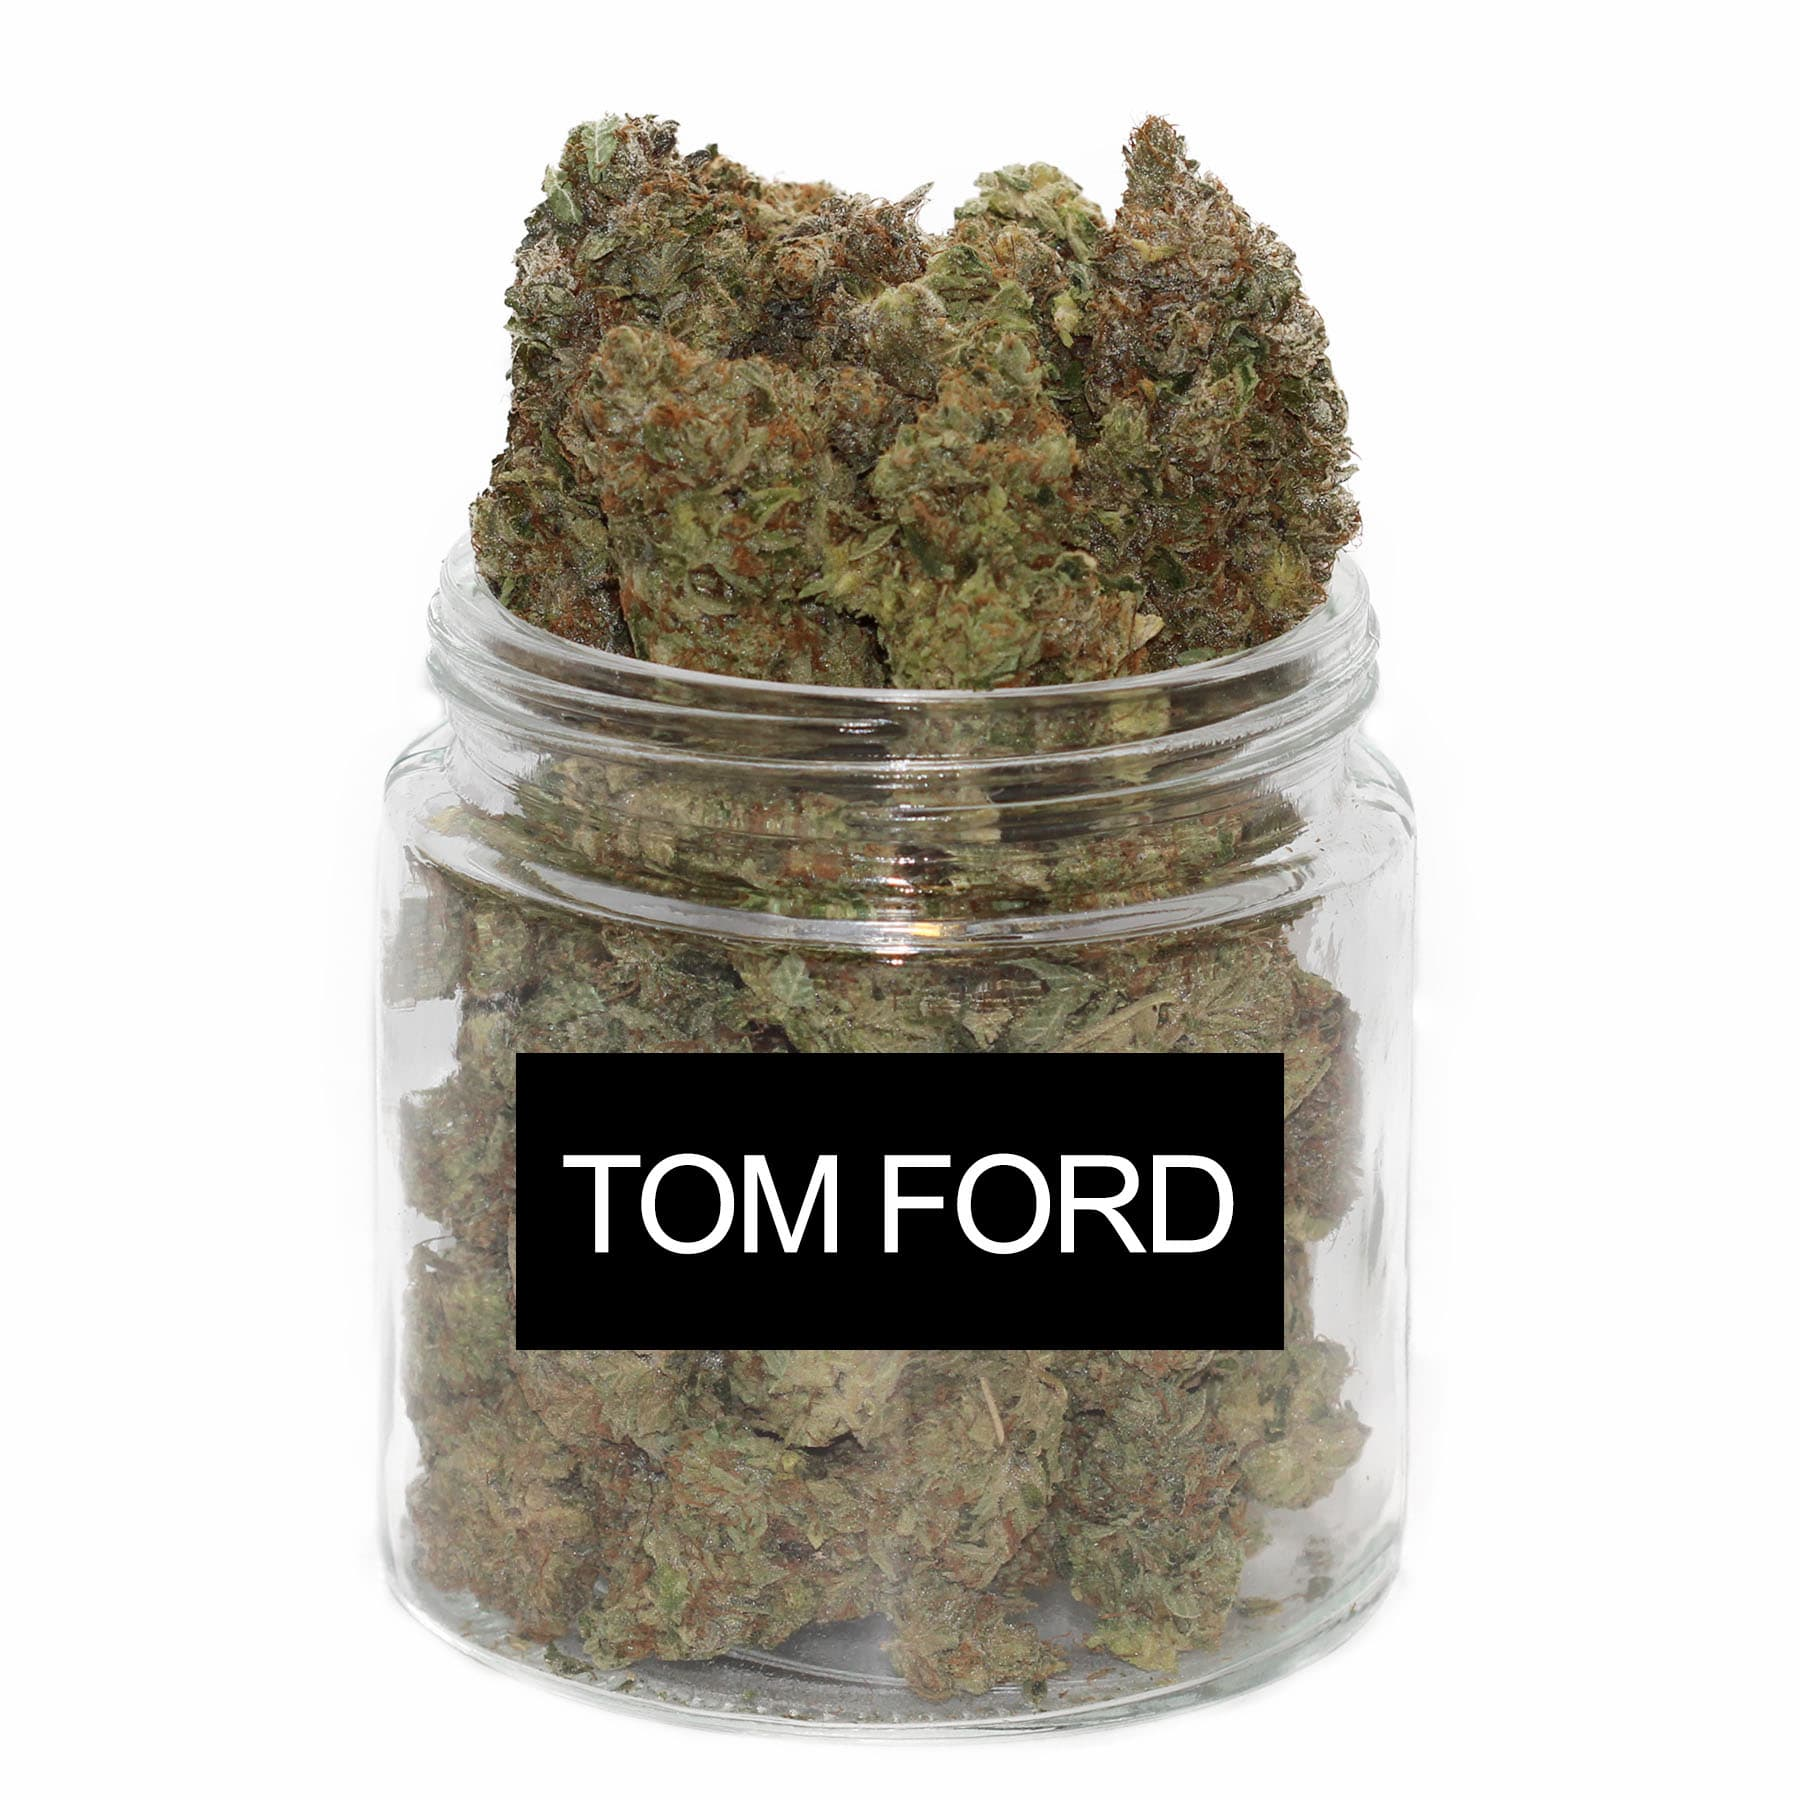 Tom Ford by Get Kush - Image © 2018 Get Kush. All Rights Reserved.